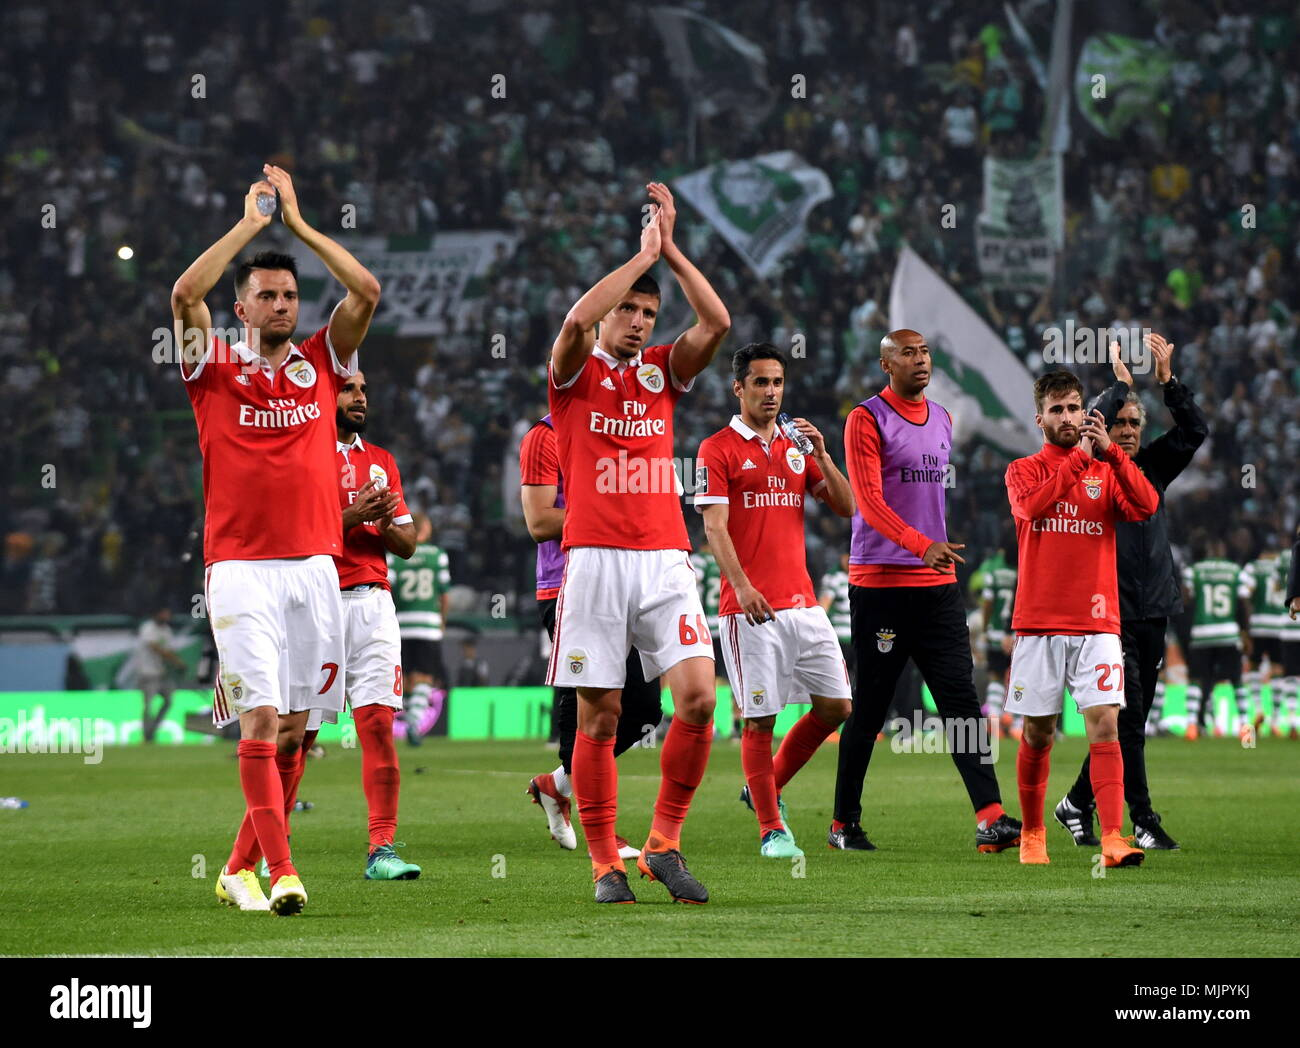 Lisbon portugal 5th may 2018 players of benfica greet the lisbon portugal 5th may 2018 players of benfica greet the spectators after portuguese league soccer match between sl benfica and sporting cp in lisbon m4hsunfo